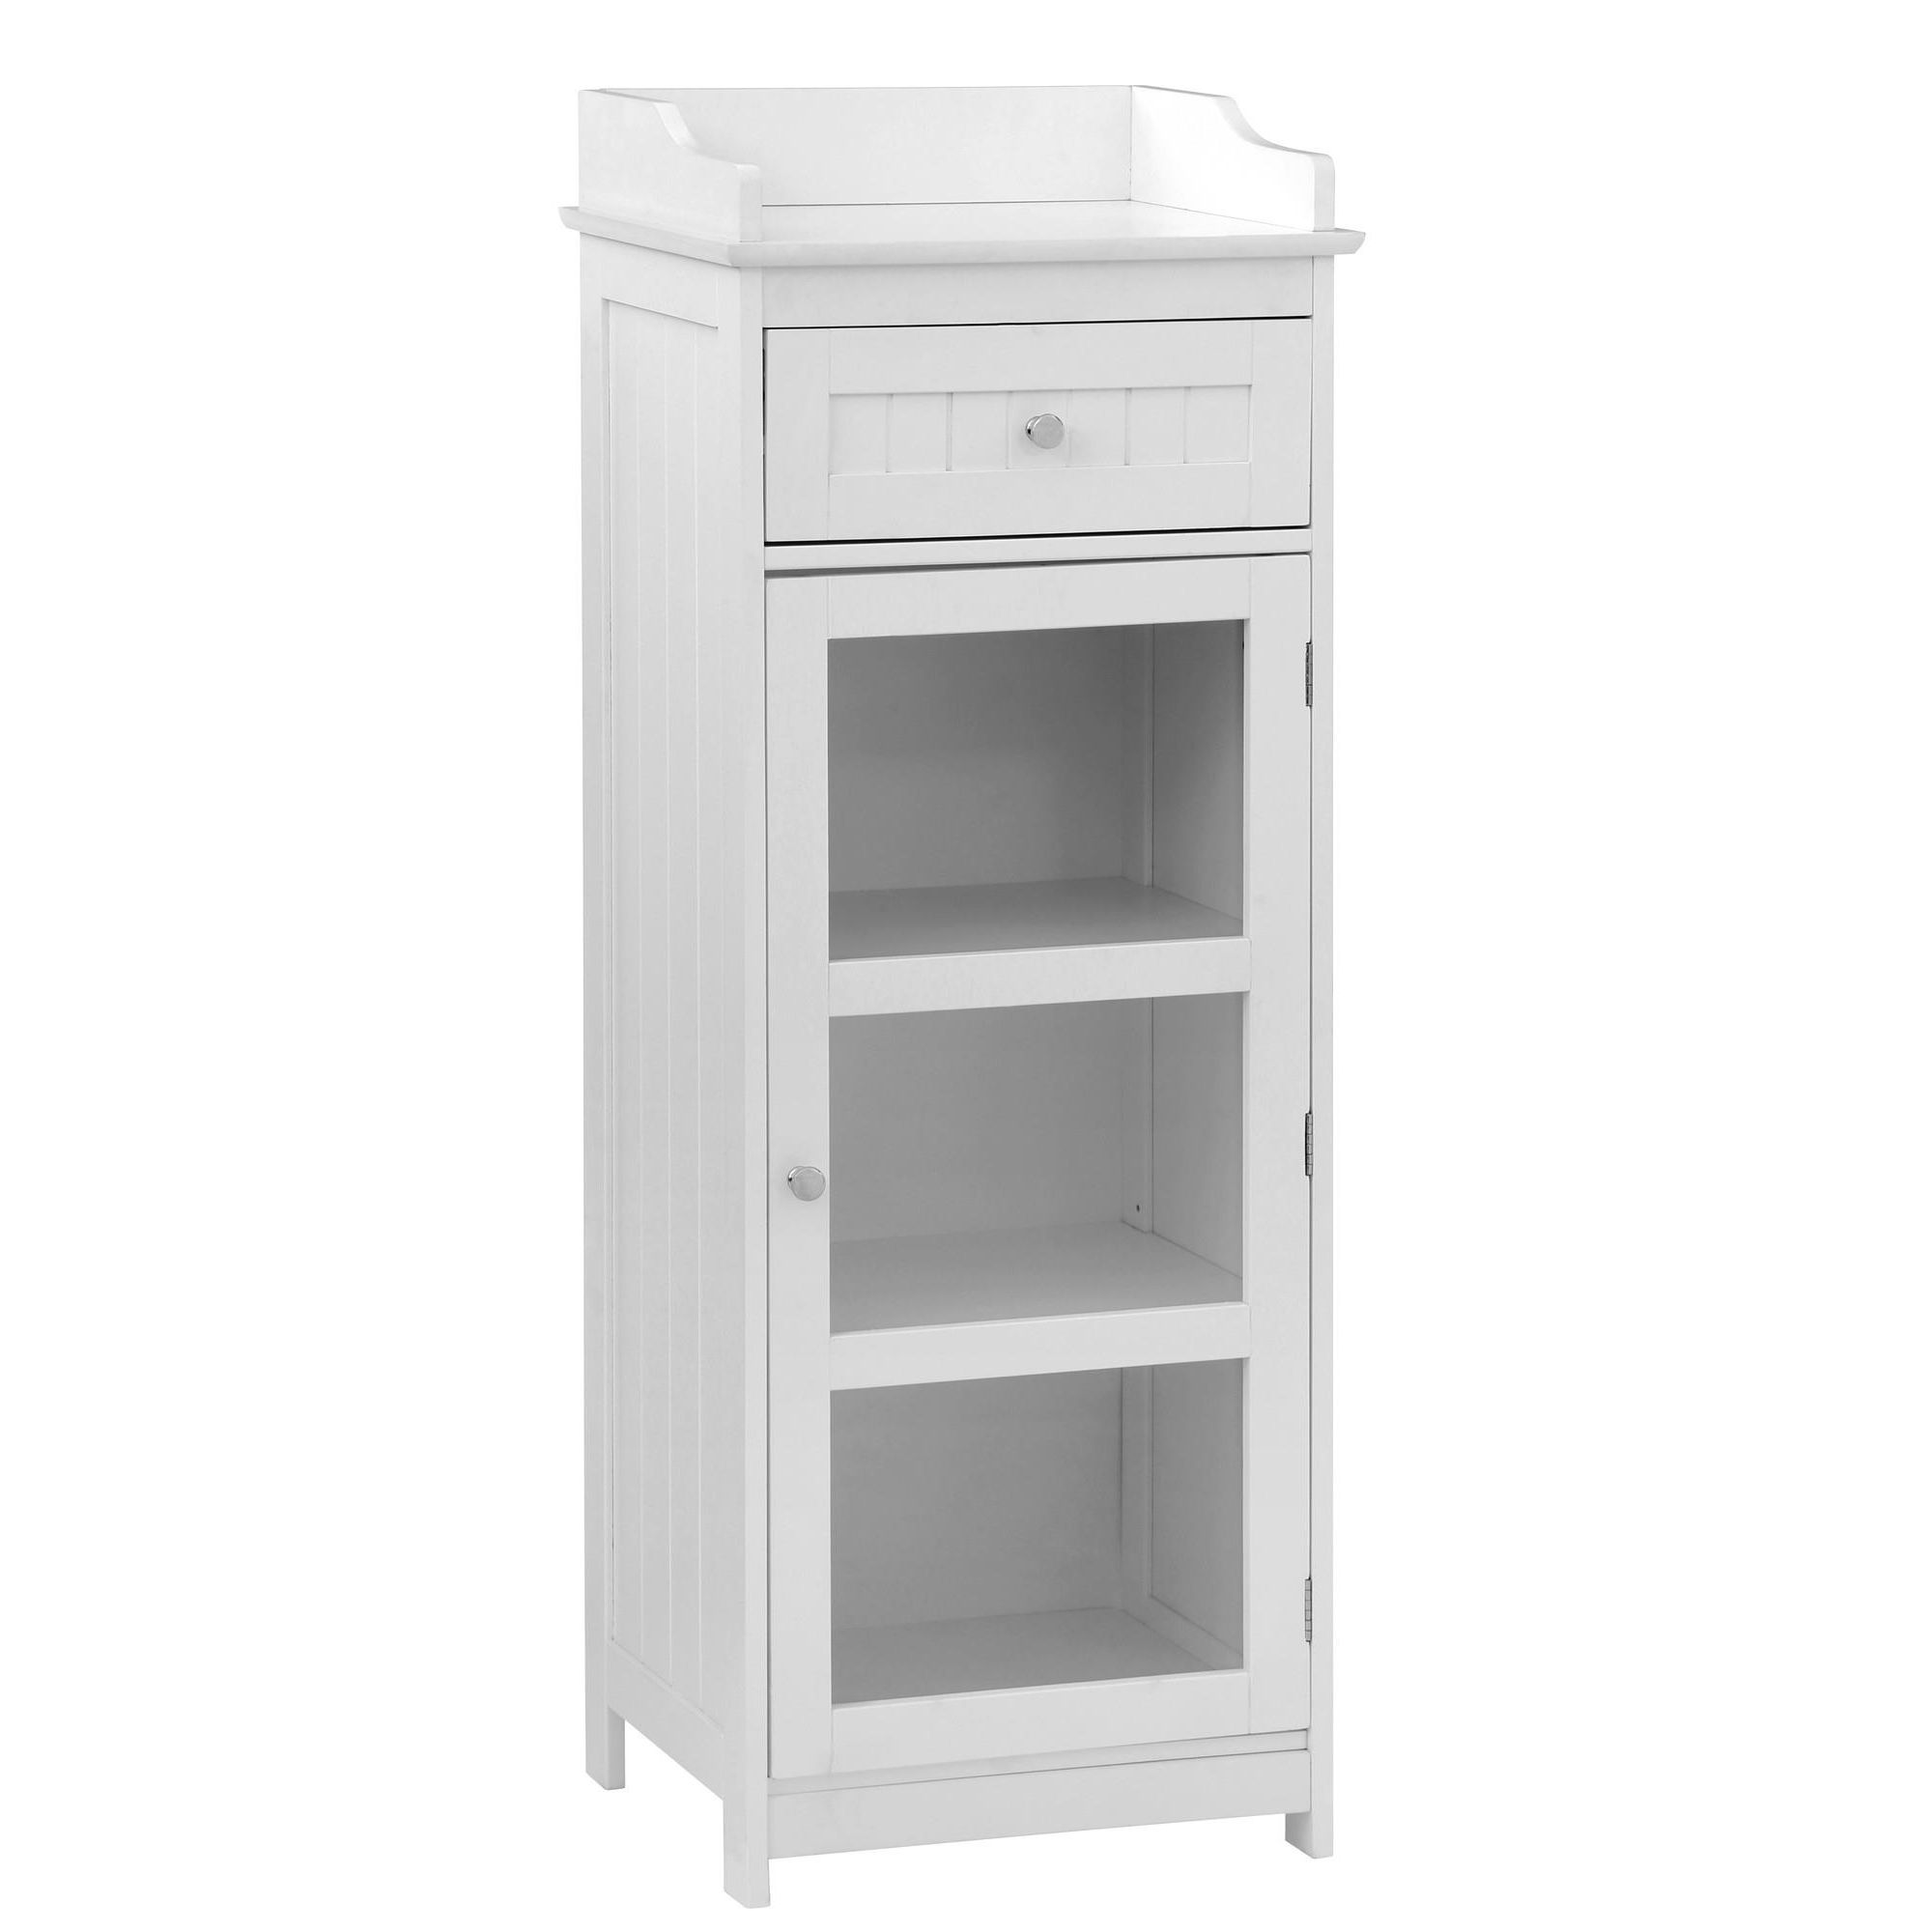 26 fantastic bathroom storage cabinets floor standing for Floor standing bathroom furniture